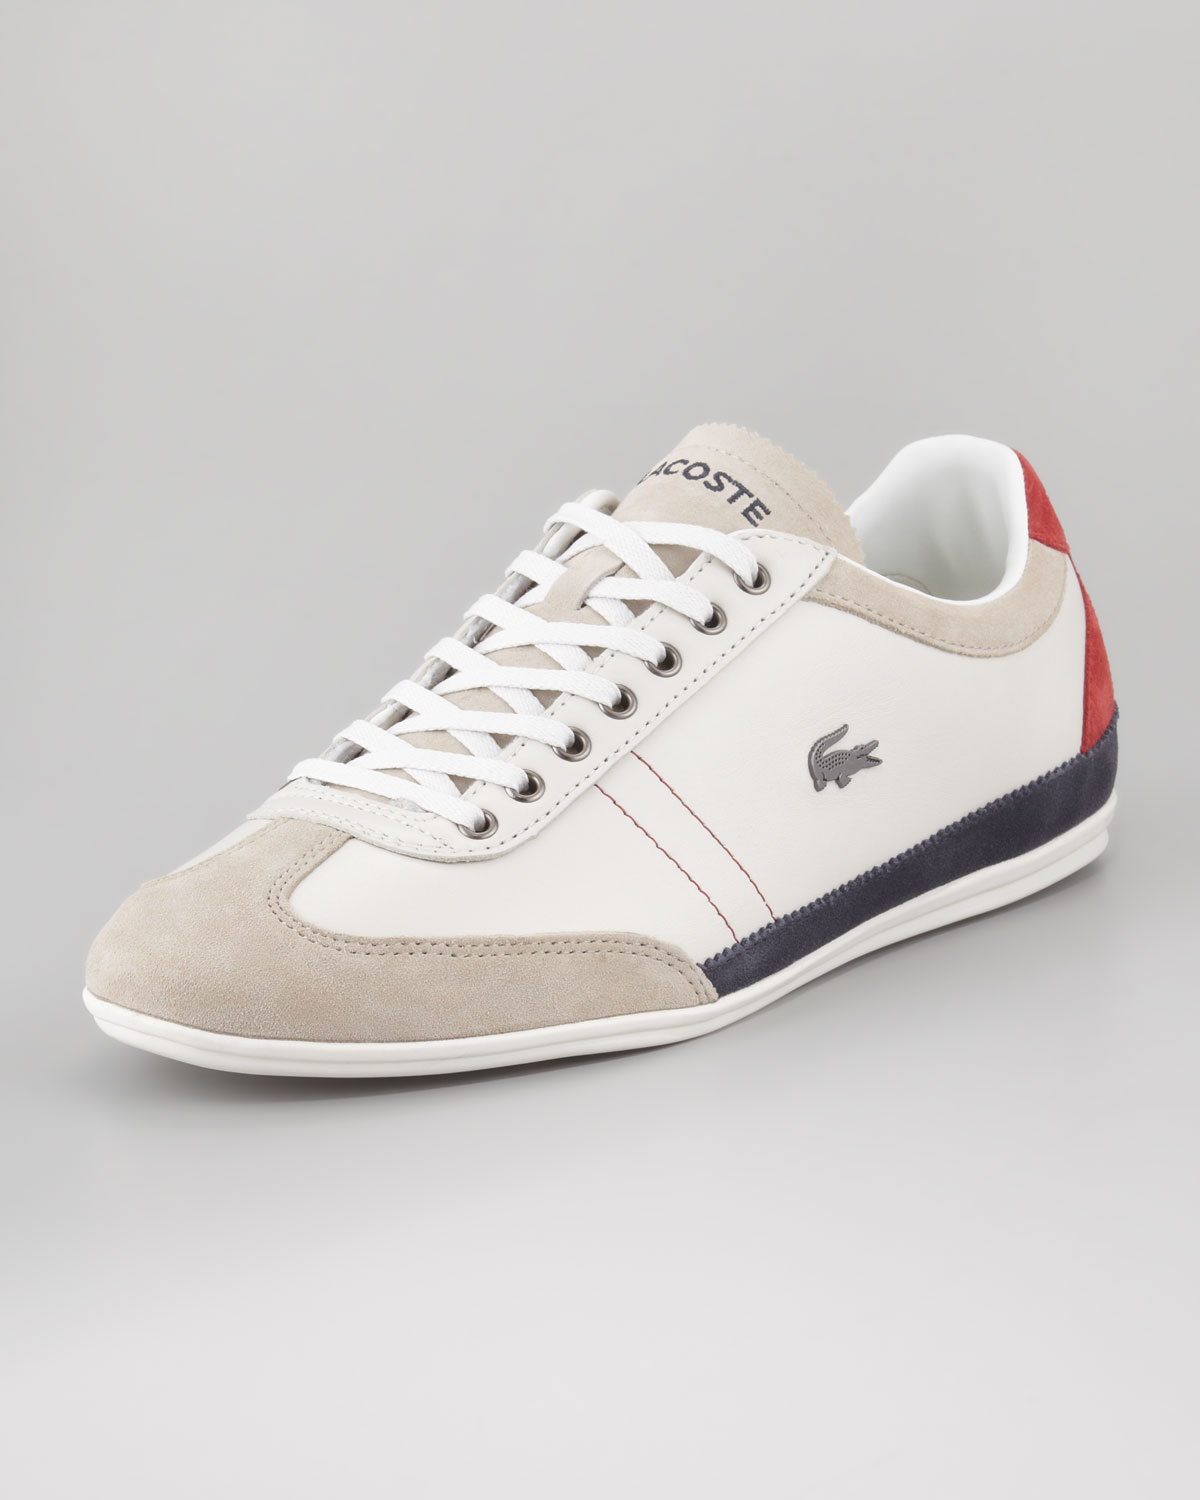 Lyst Lacoste Misano Tricolor Leather Sneaker In Natural